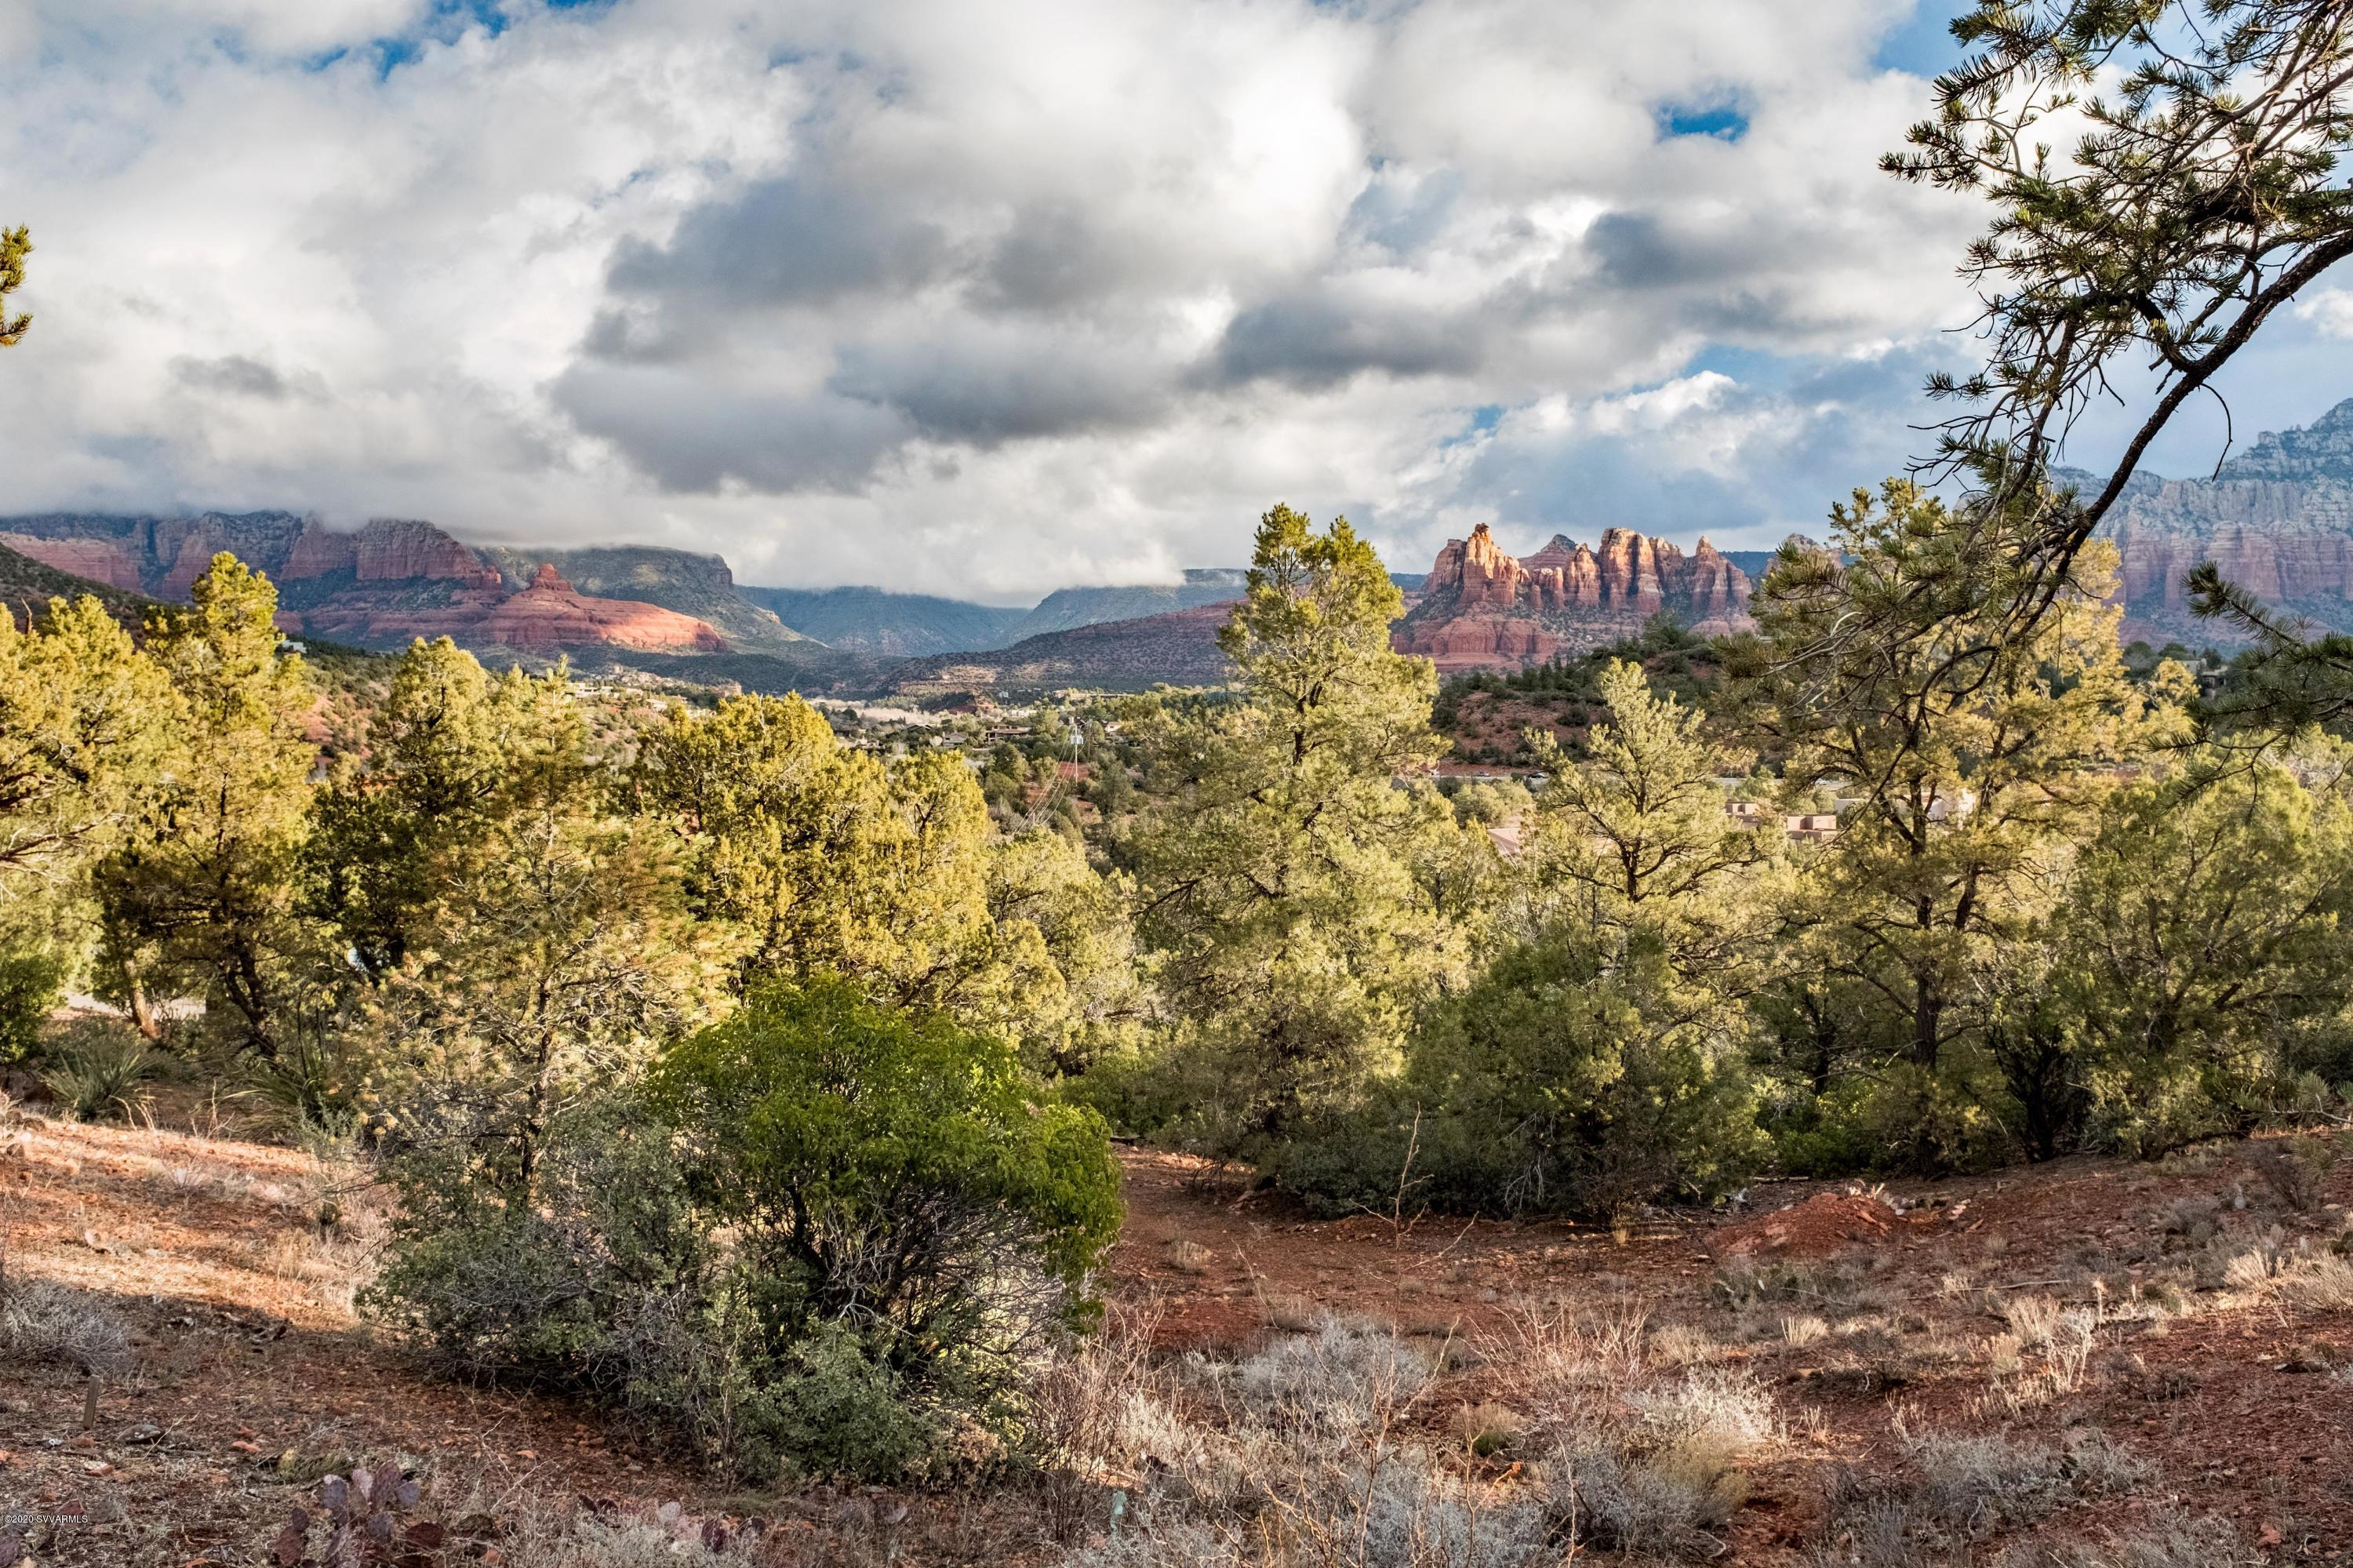 150 Chimney Rock Sedona, AZ 86336